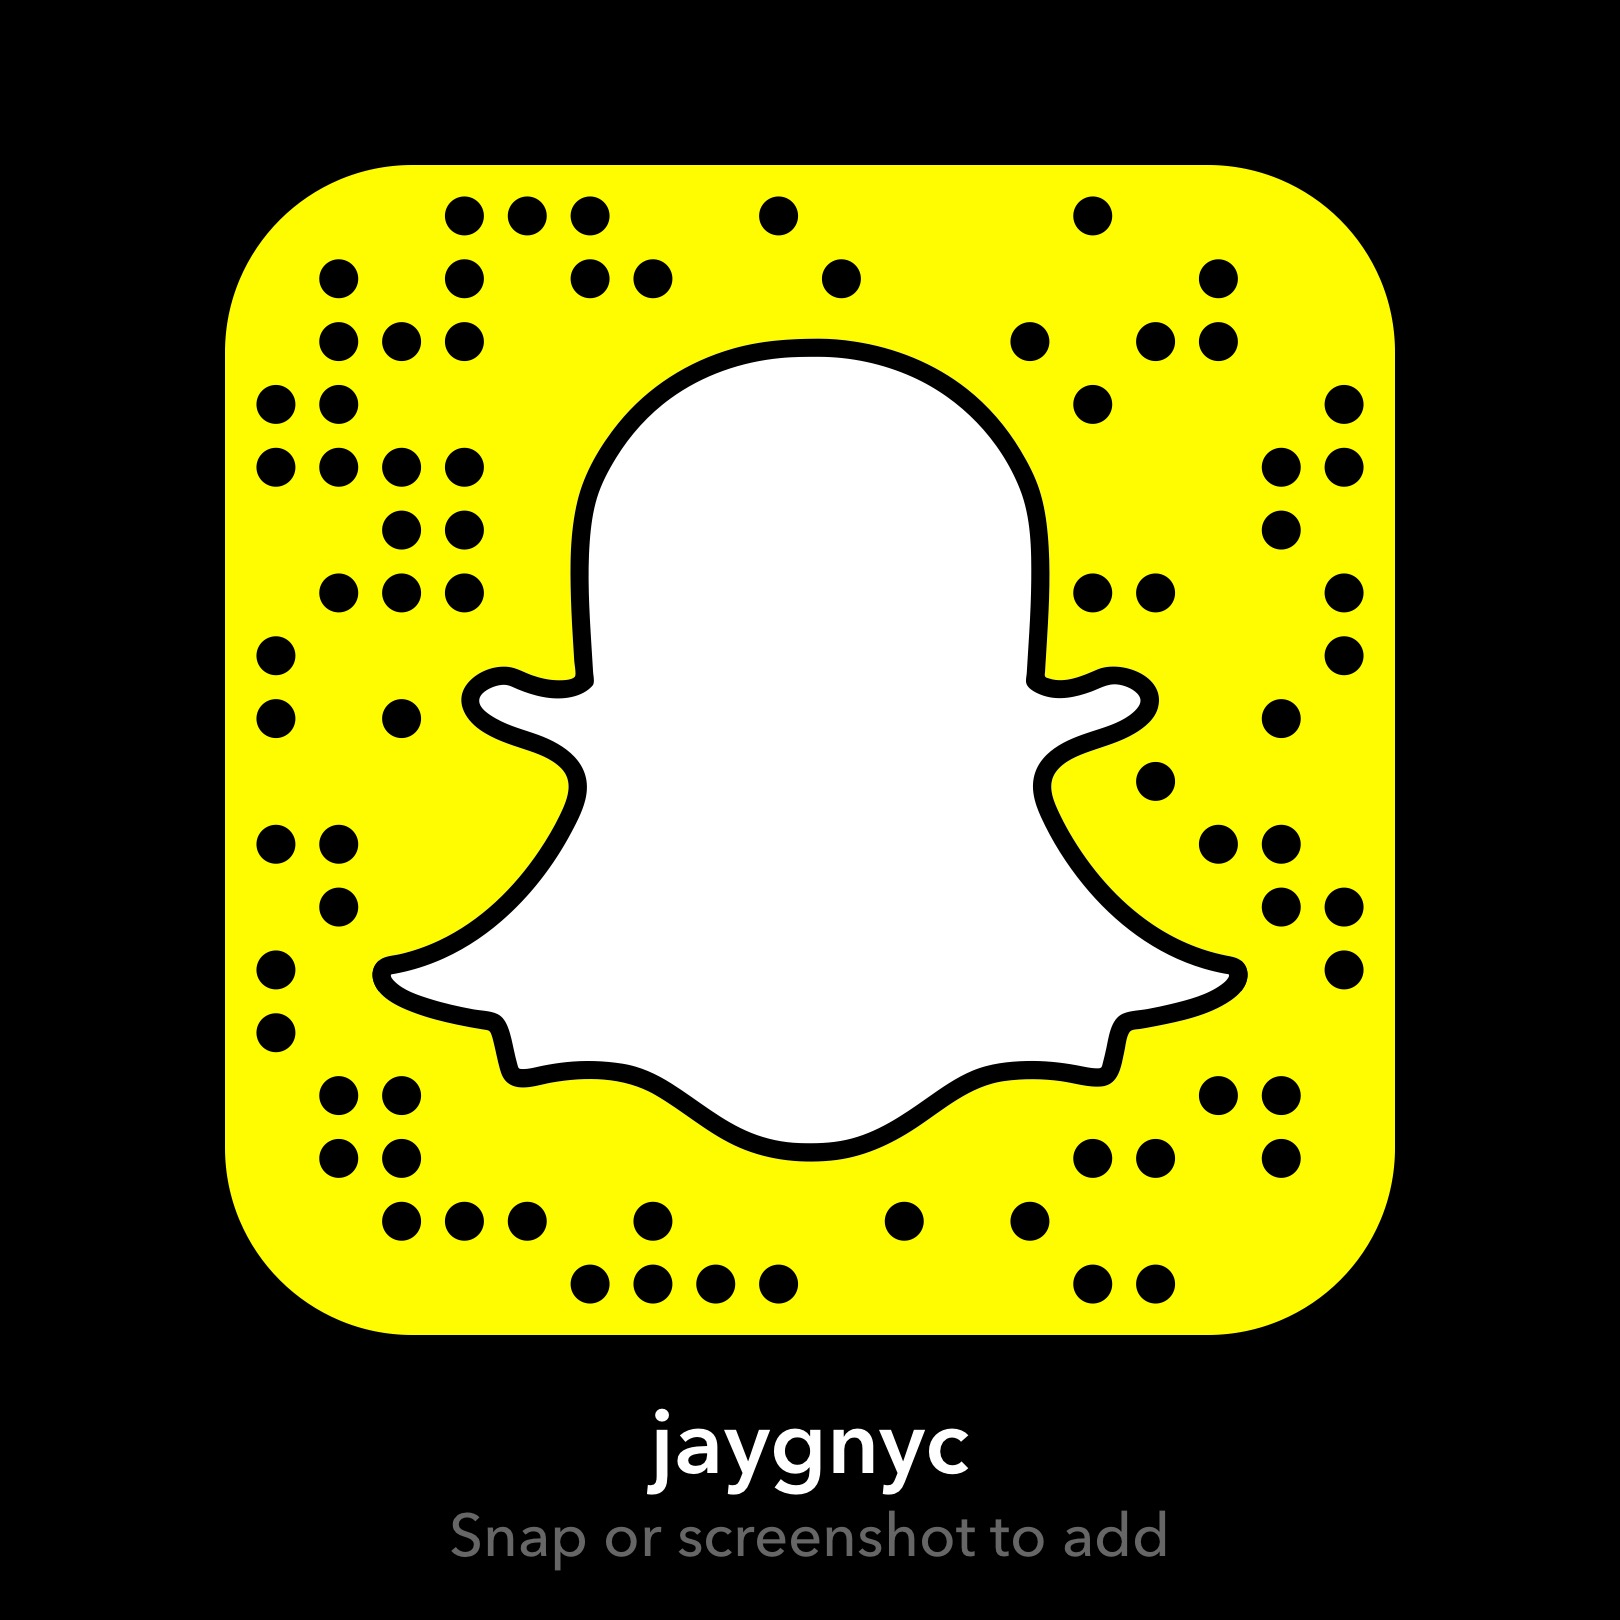 @jaygmtv's snapchat picture for jaygmtv